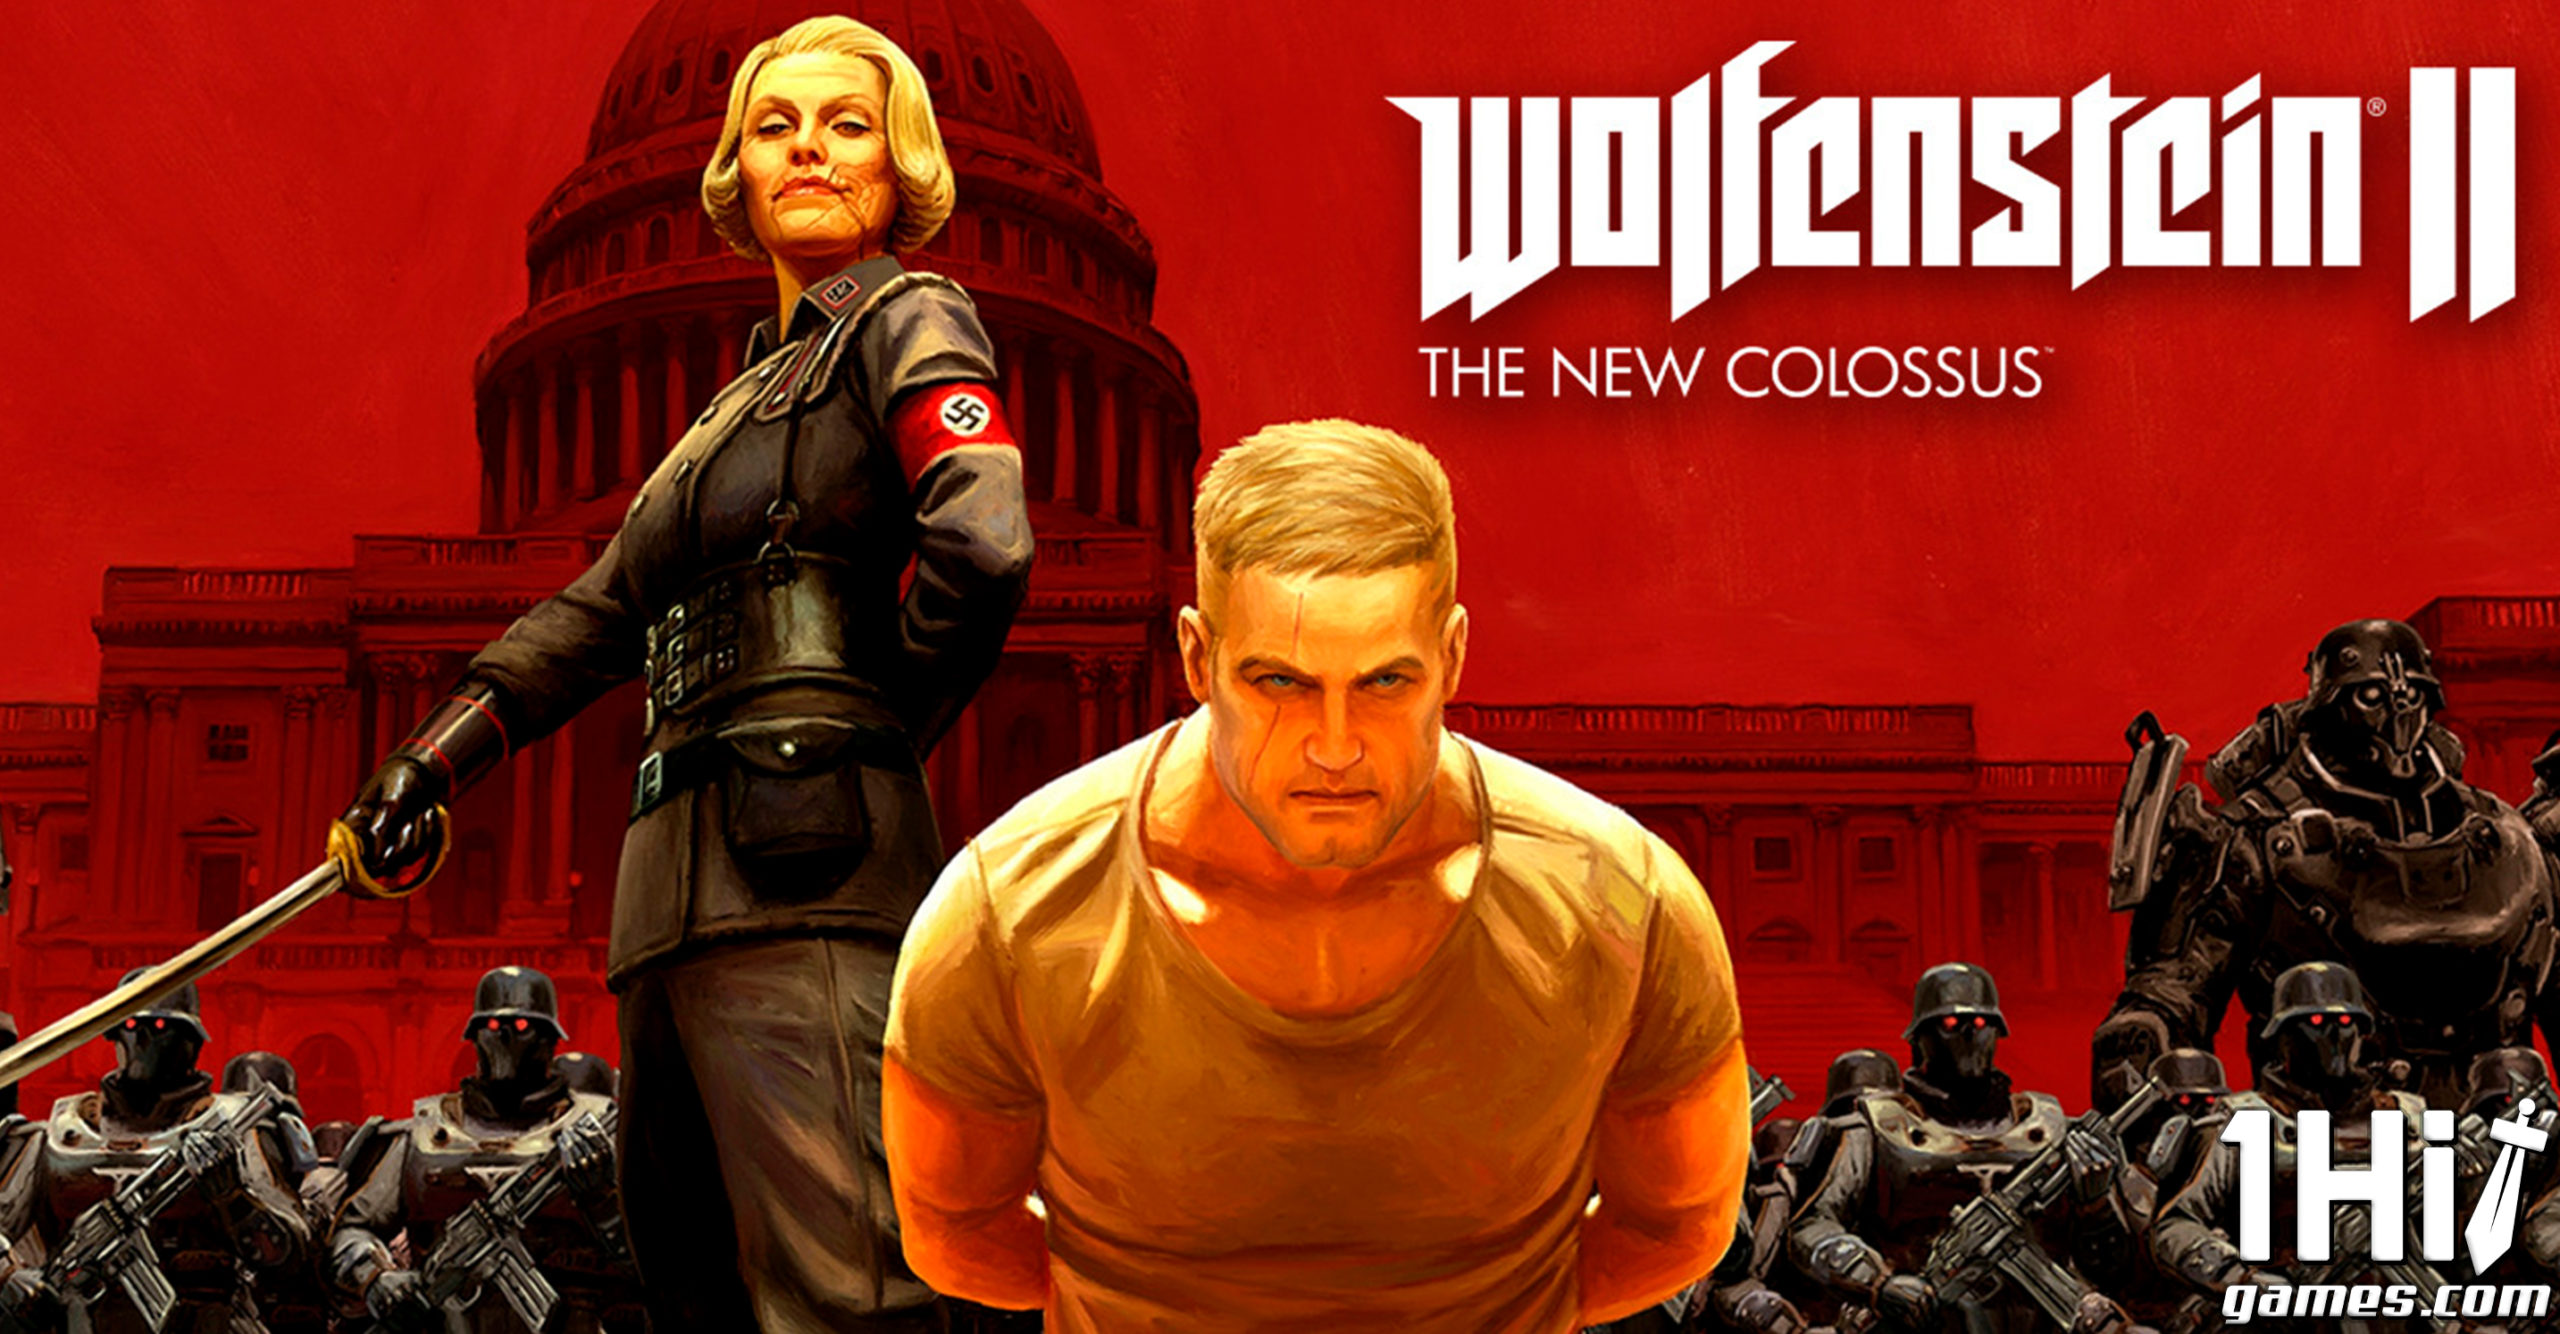 Wolfenstein Ii The New Colossus 1hitgames